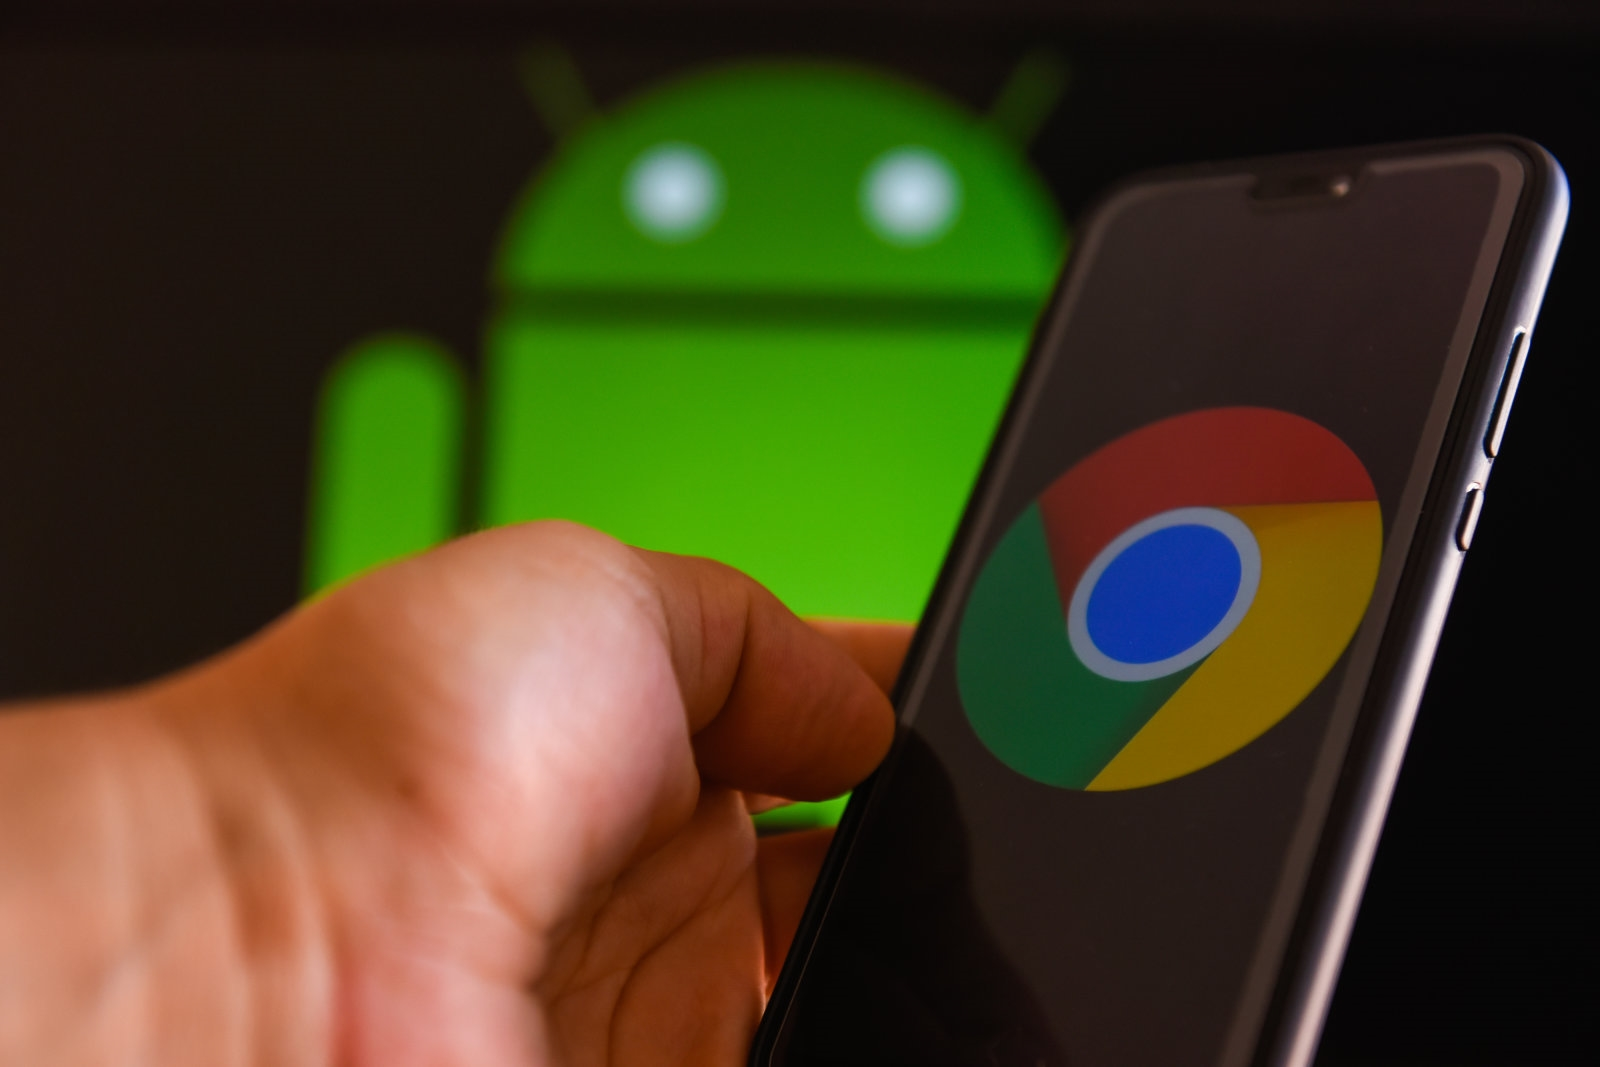 Google pauses Chrome update for Android after reports of app data loss | DeviceDaily.com